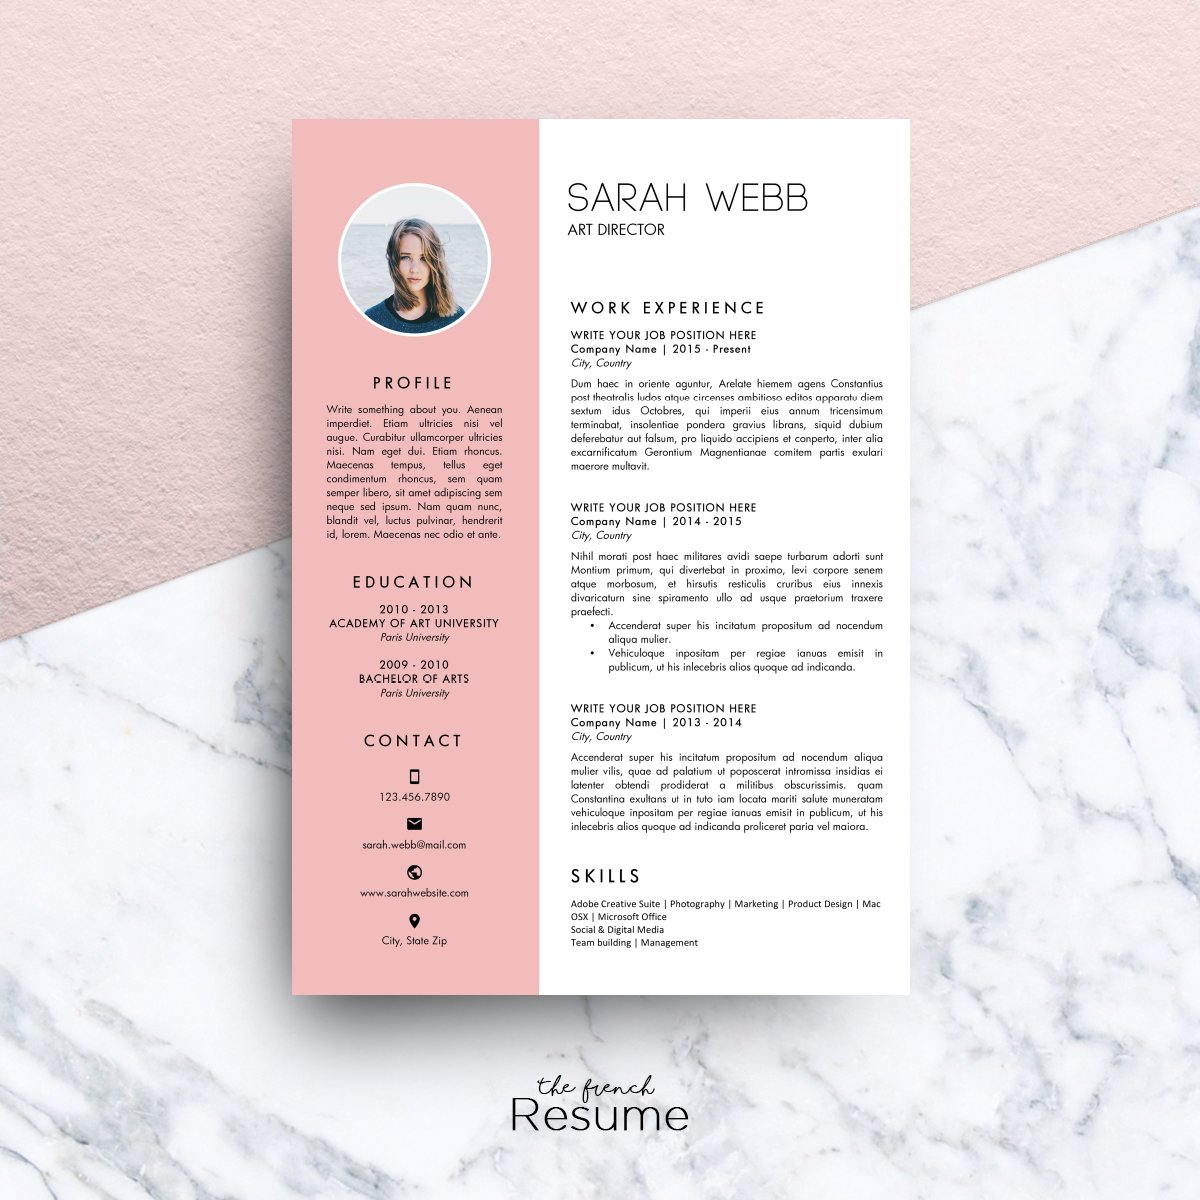 Resume Template (MS Word) | Sarah ~ Resume Templates ~ Creative Market